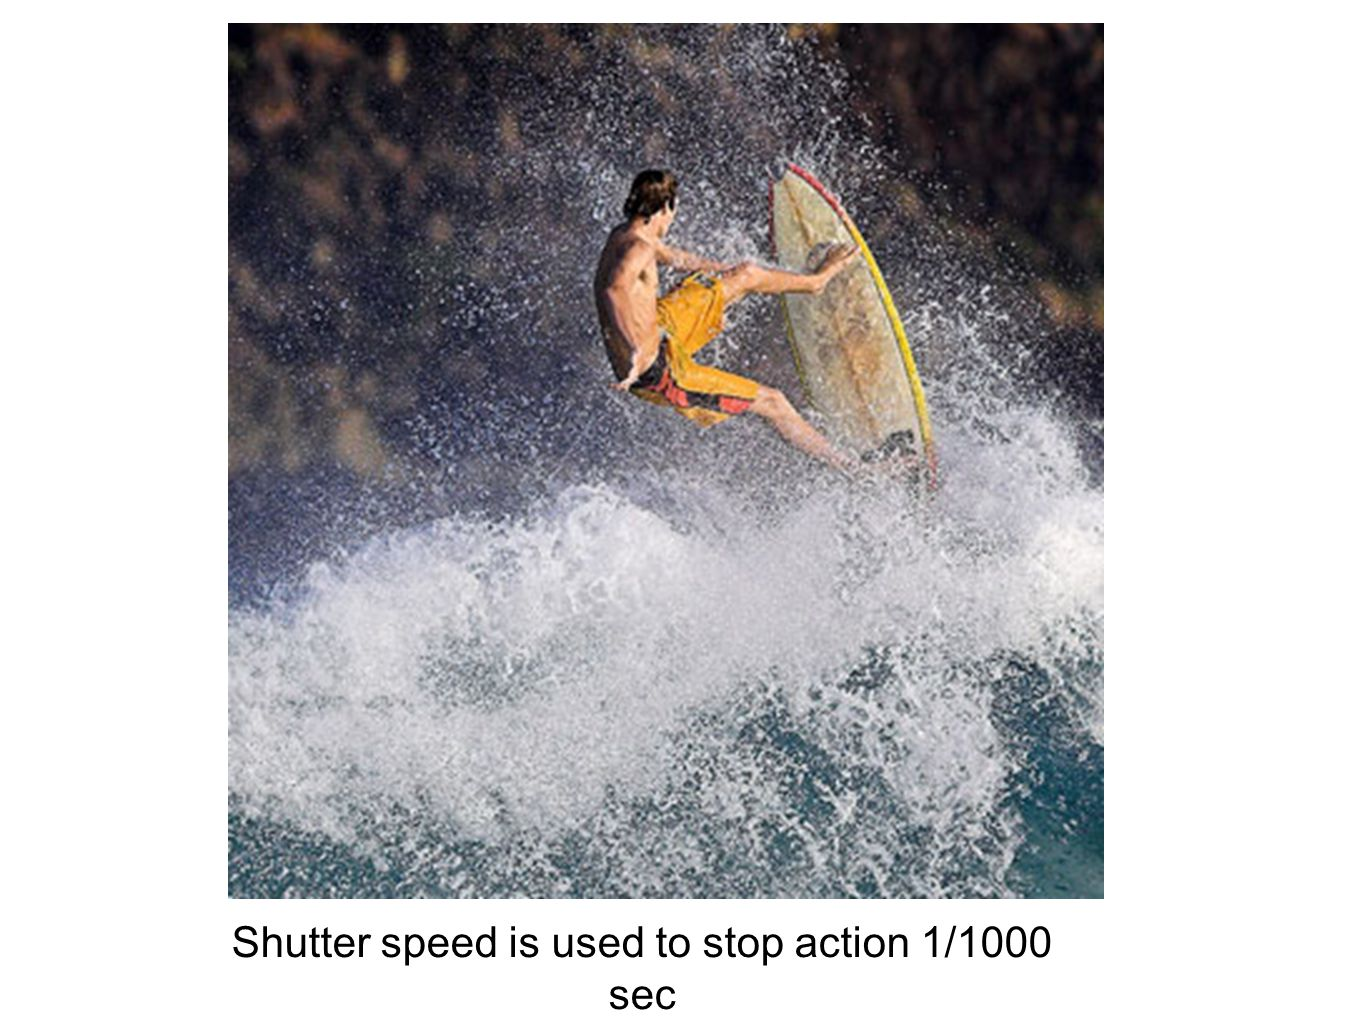 Shutter speed is used to stop action 1/1000 sec